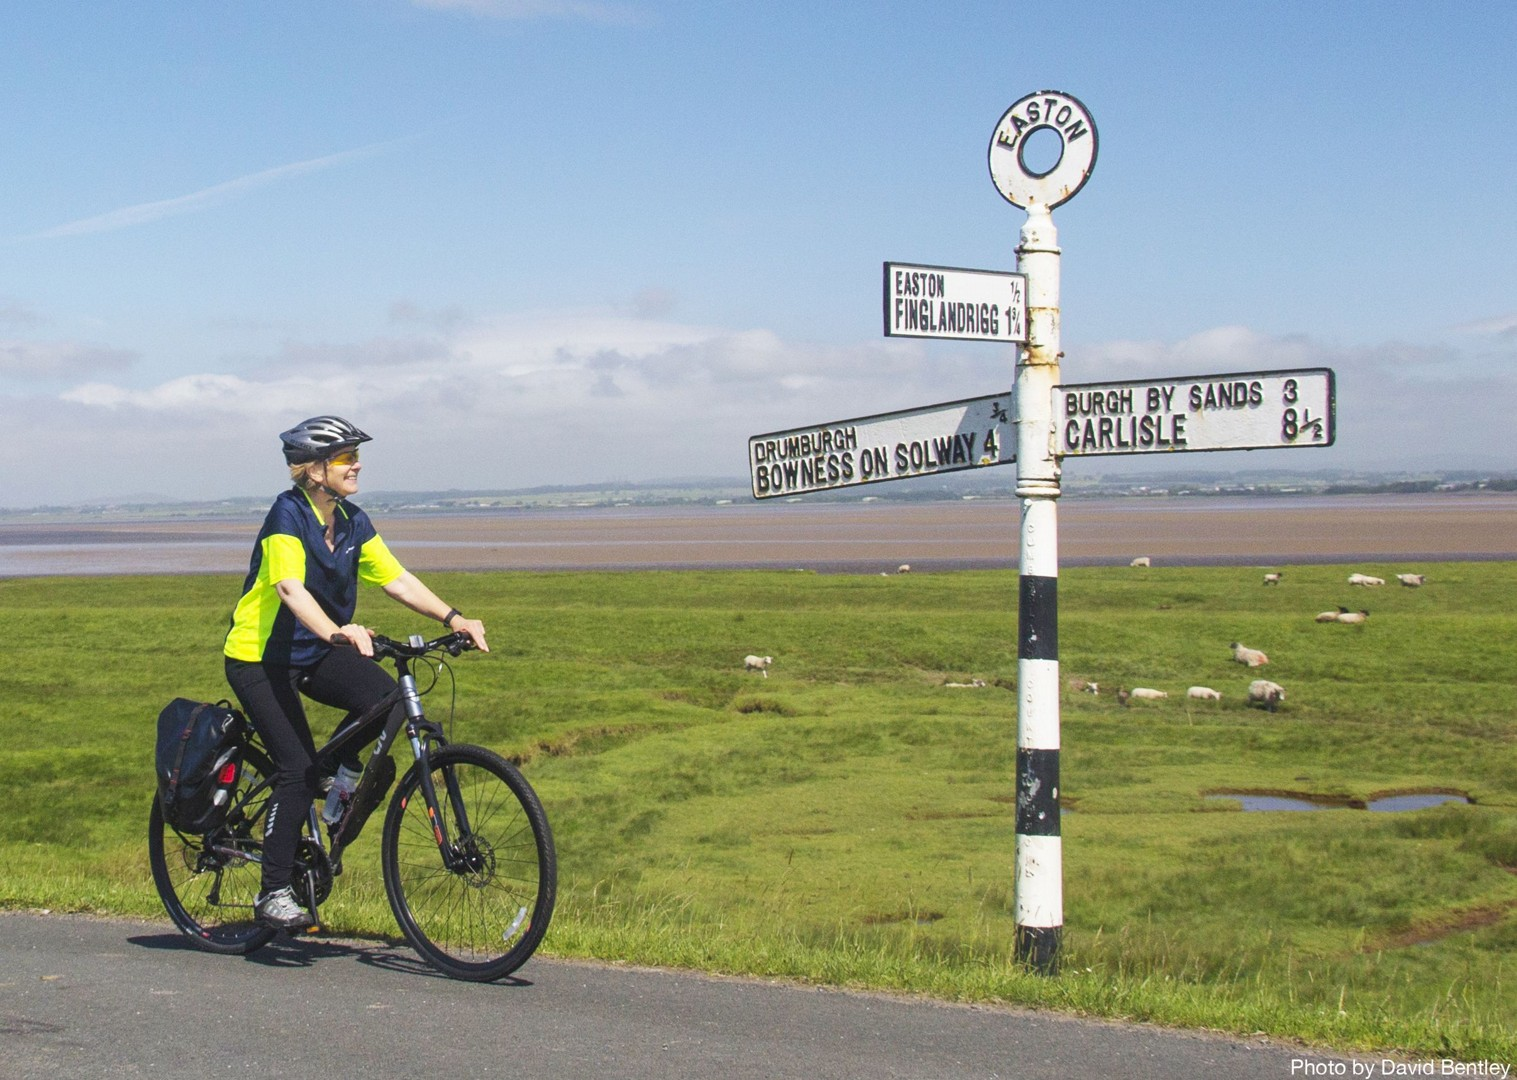 Cycle-Hadrians-Wall-UK-Hadrians-Cycleway-Self-Guided-Leisure-Cycling-Holiday.jpg - UK - Hadrian's Cycleway - 2 Days Cycling - Self-Guided Leisure Cycling Holiday - Leisure Cycling